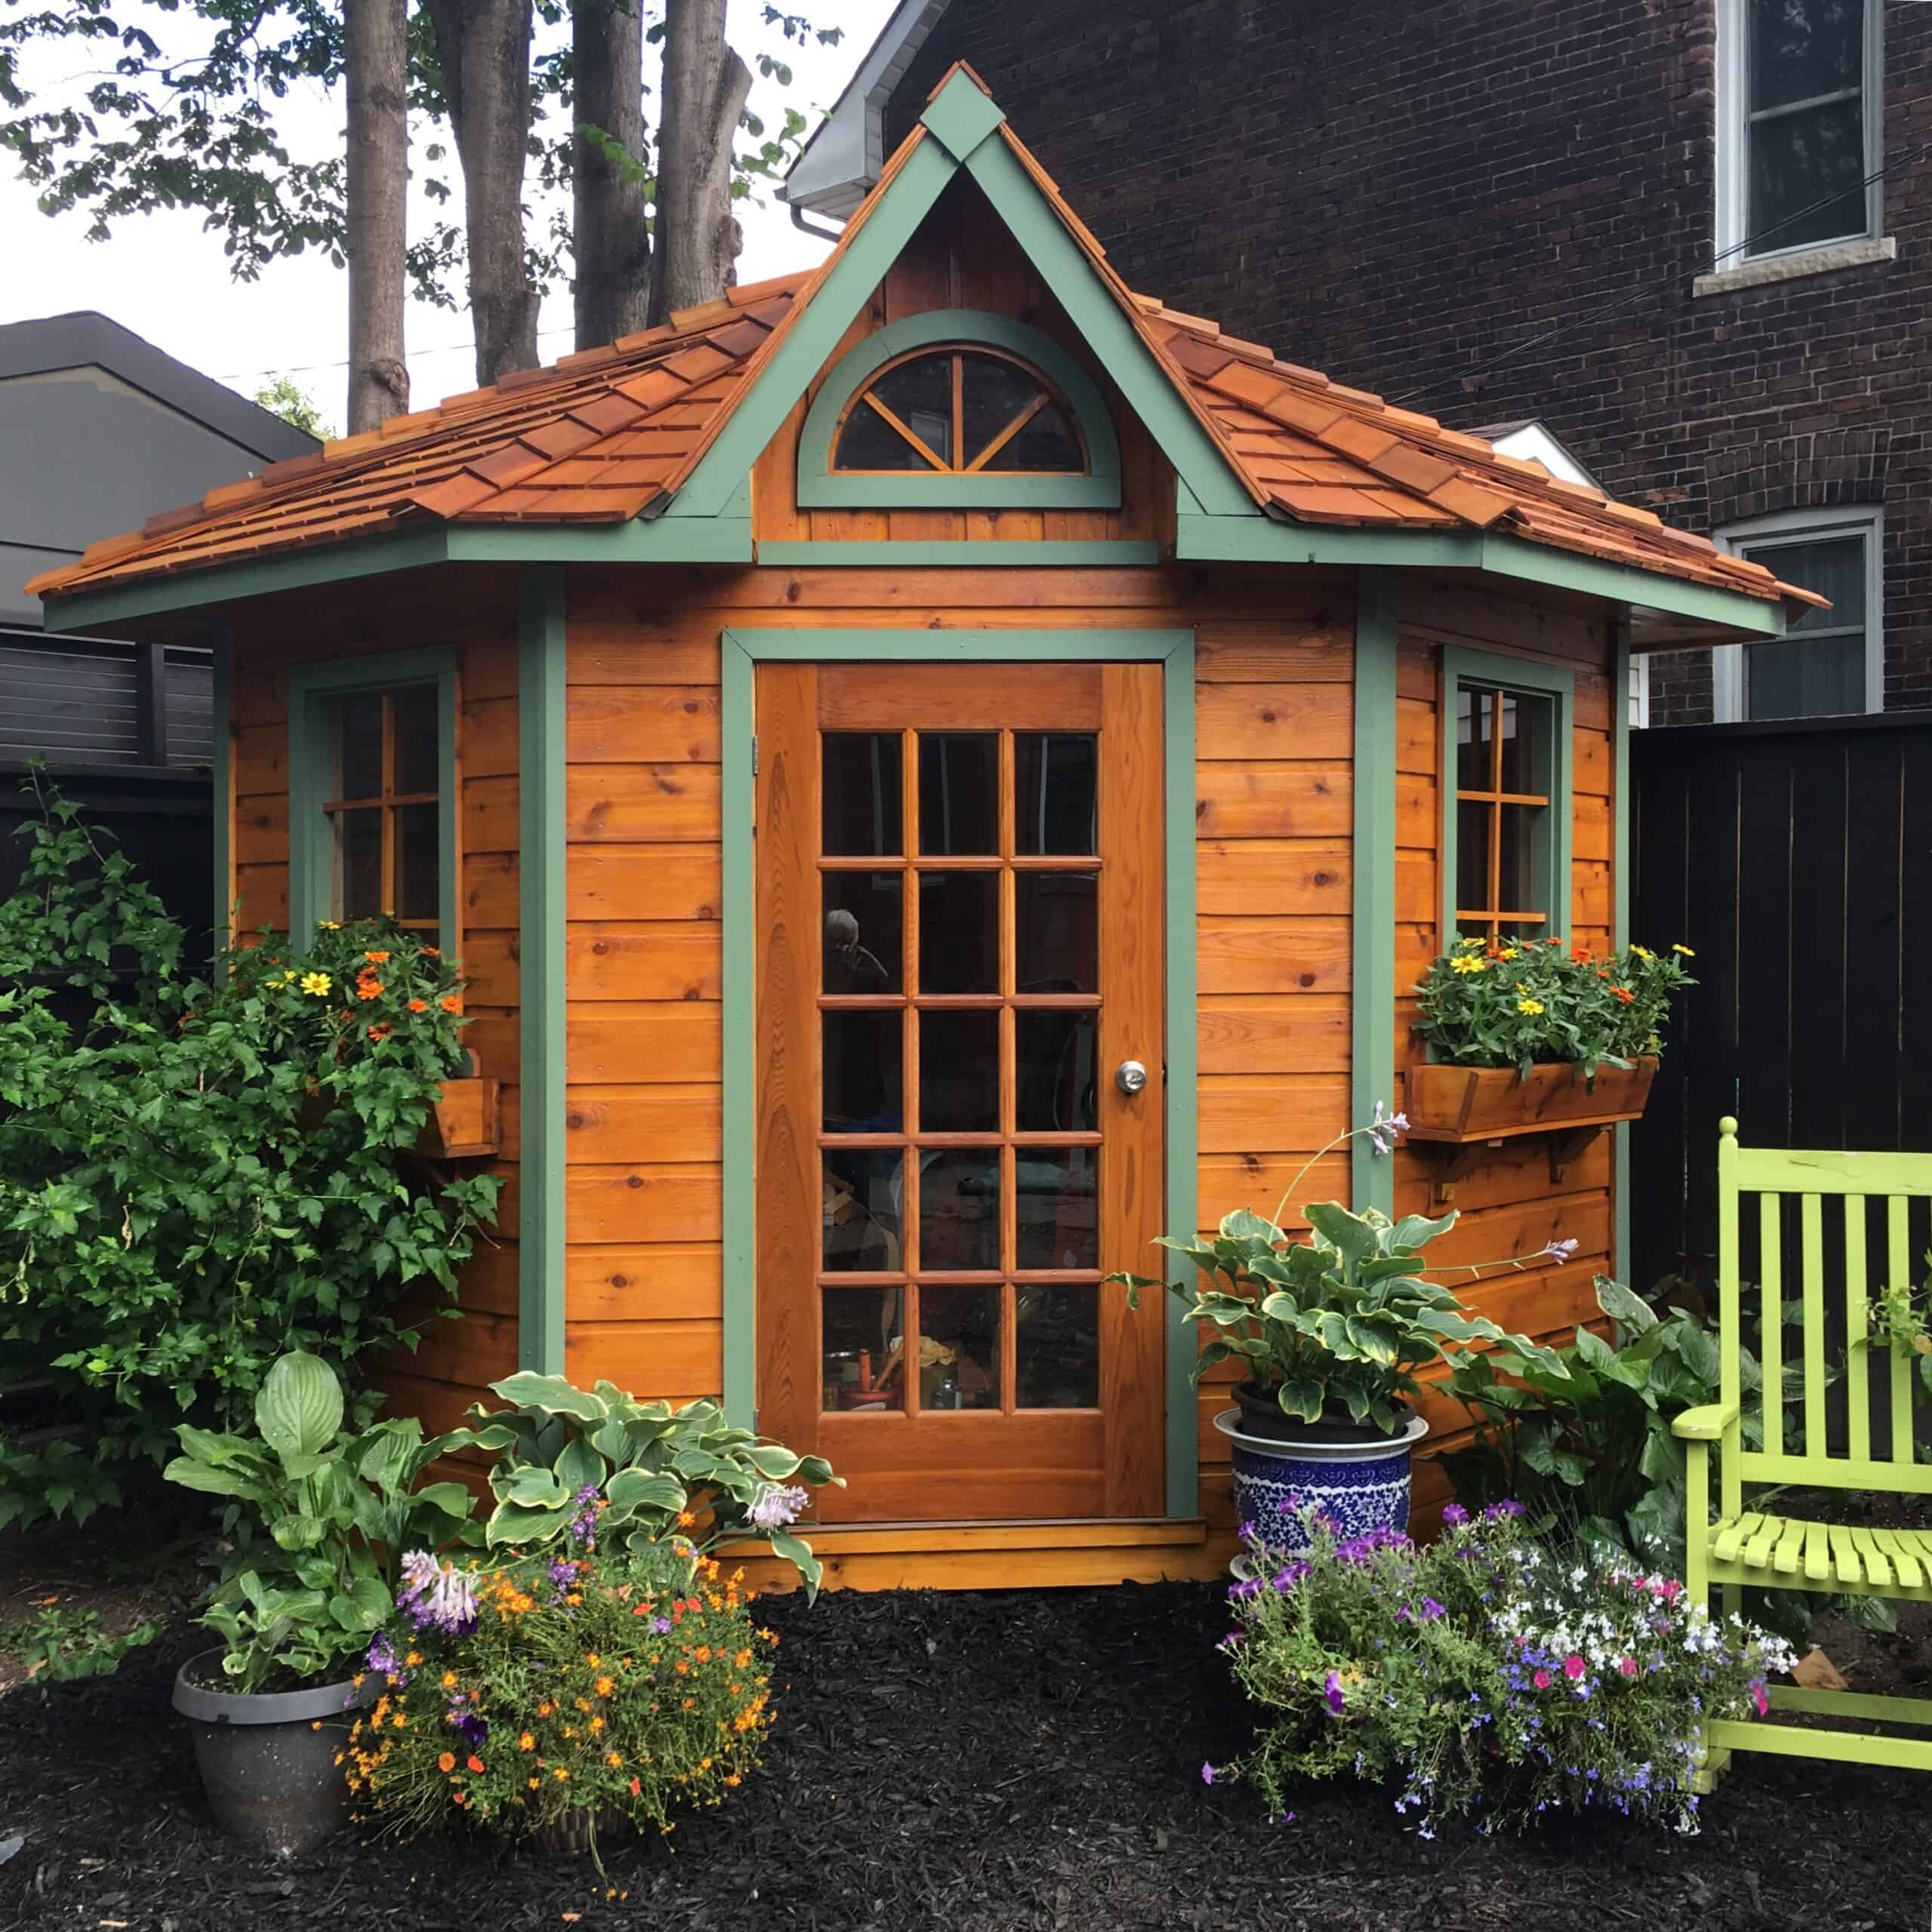 Decorative Items For sheds - Summerwood Products